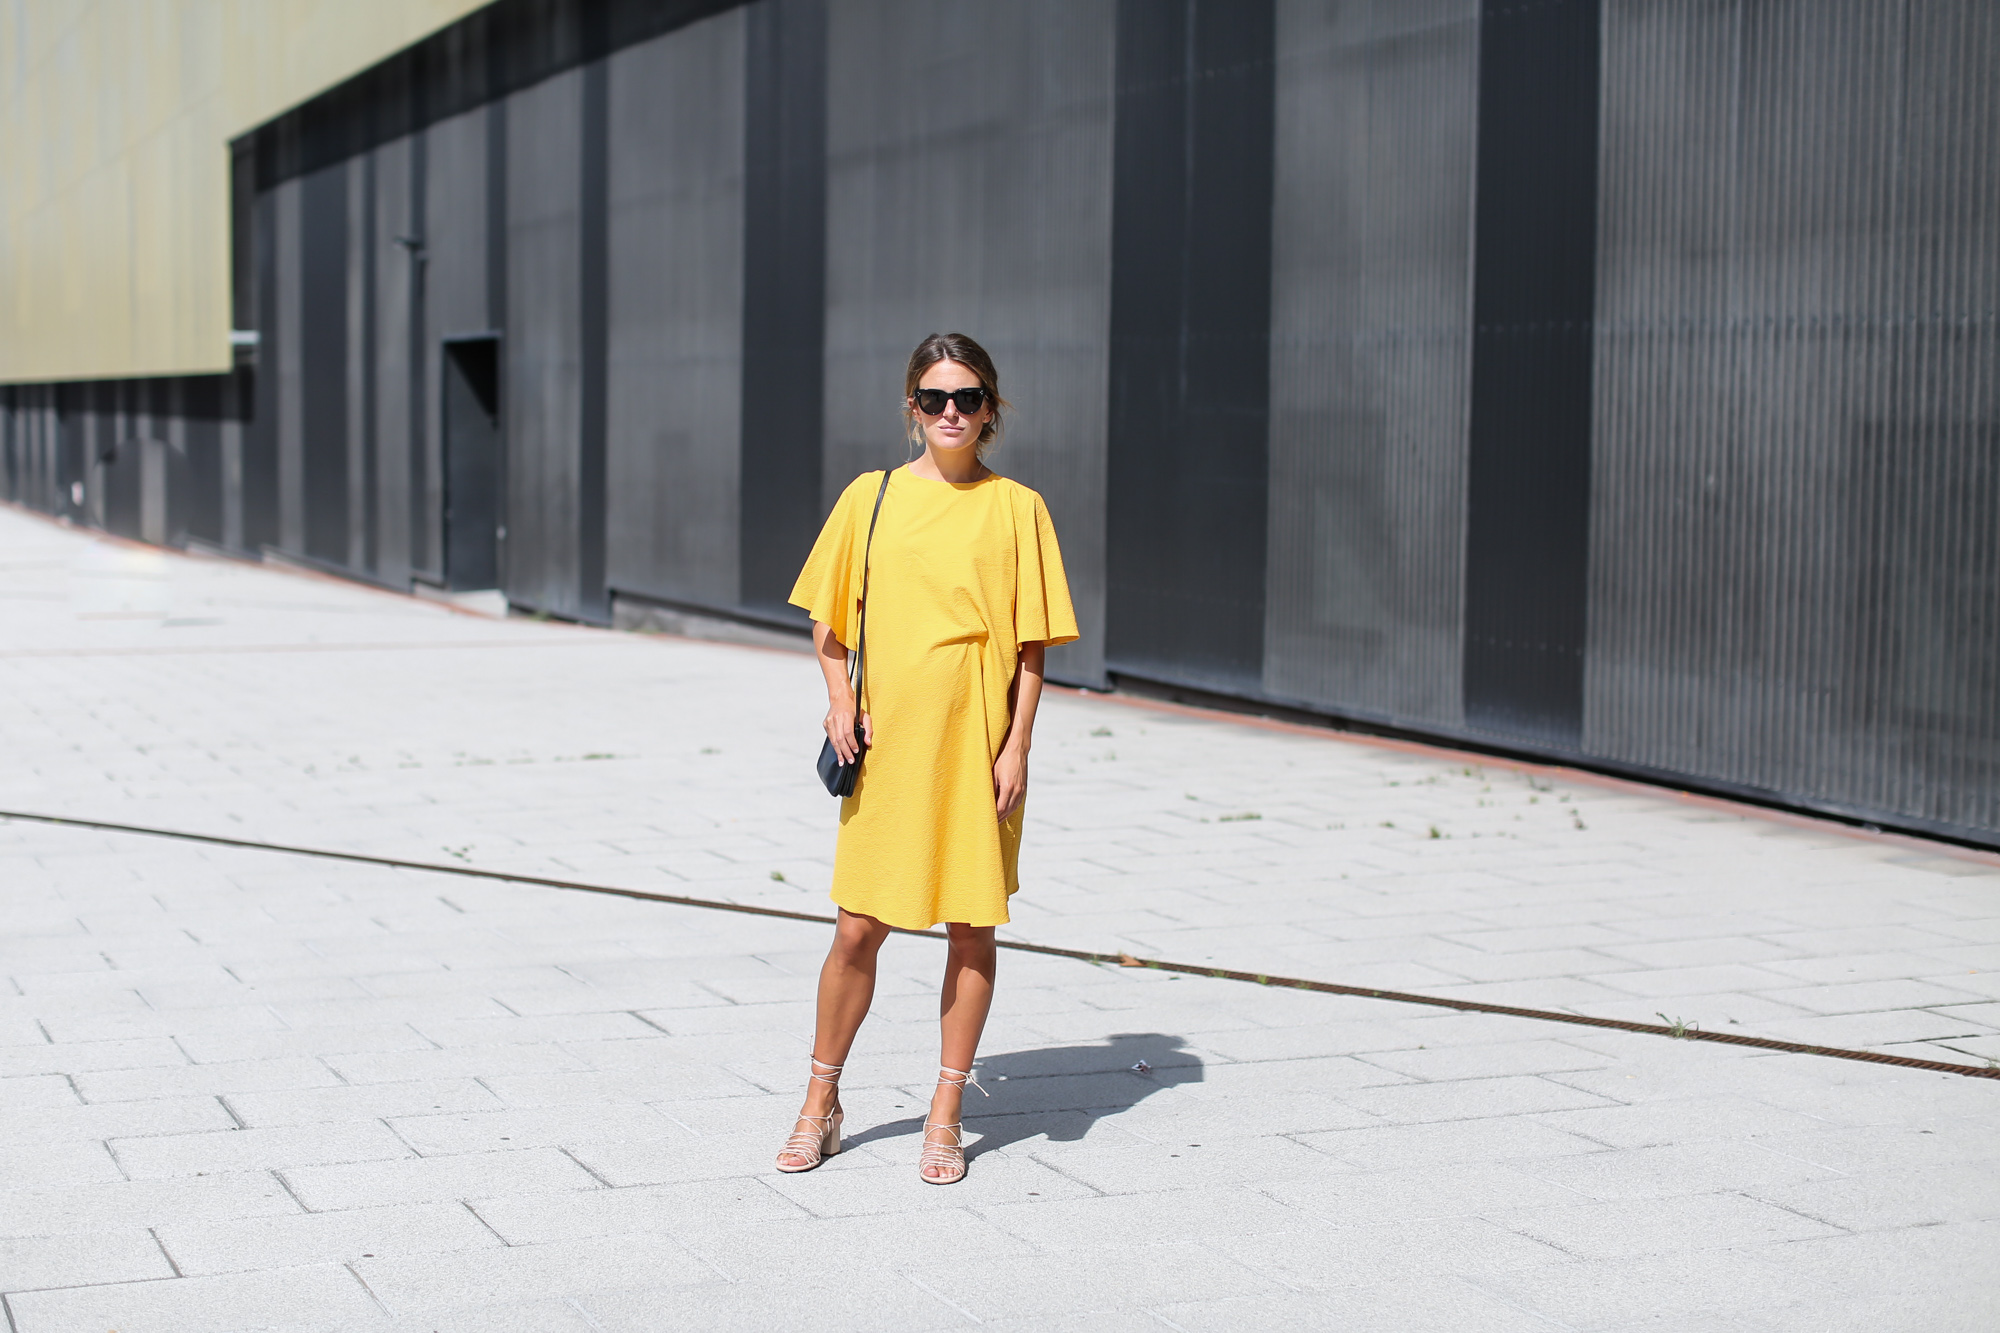 Clochet_streetstyle_fashionblogger_bilbao_zara_joinlife_yellow_minimaldress_celinetriobag